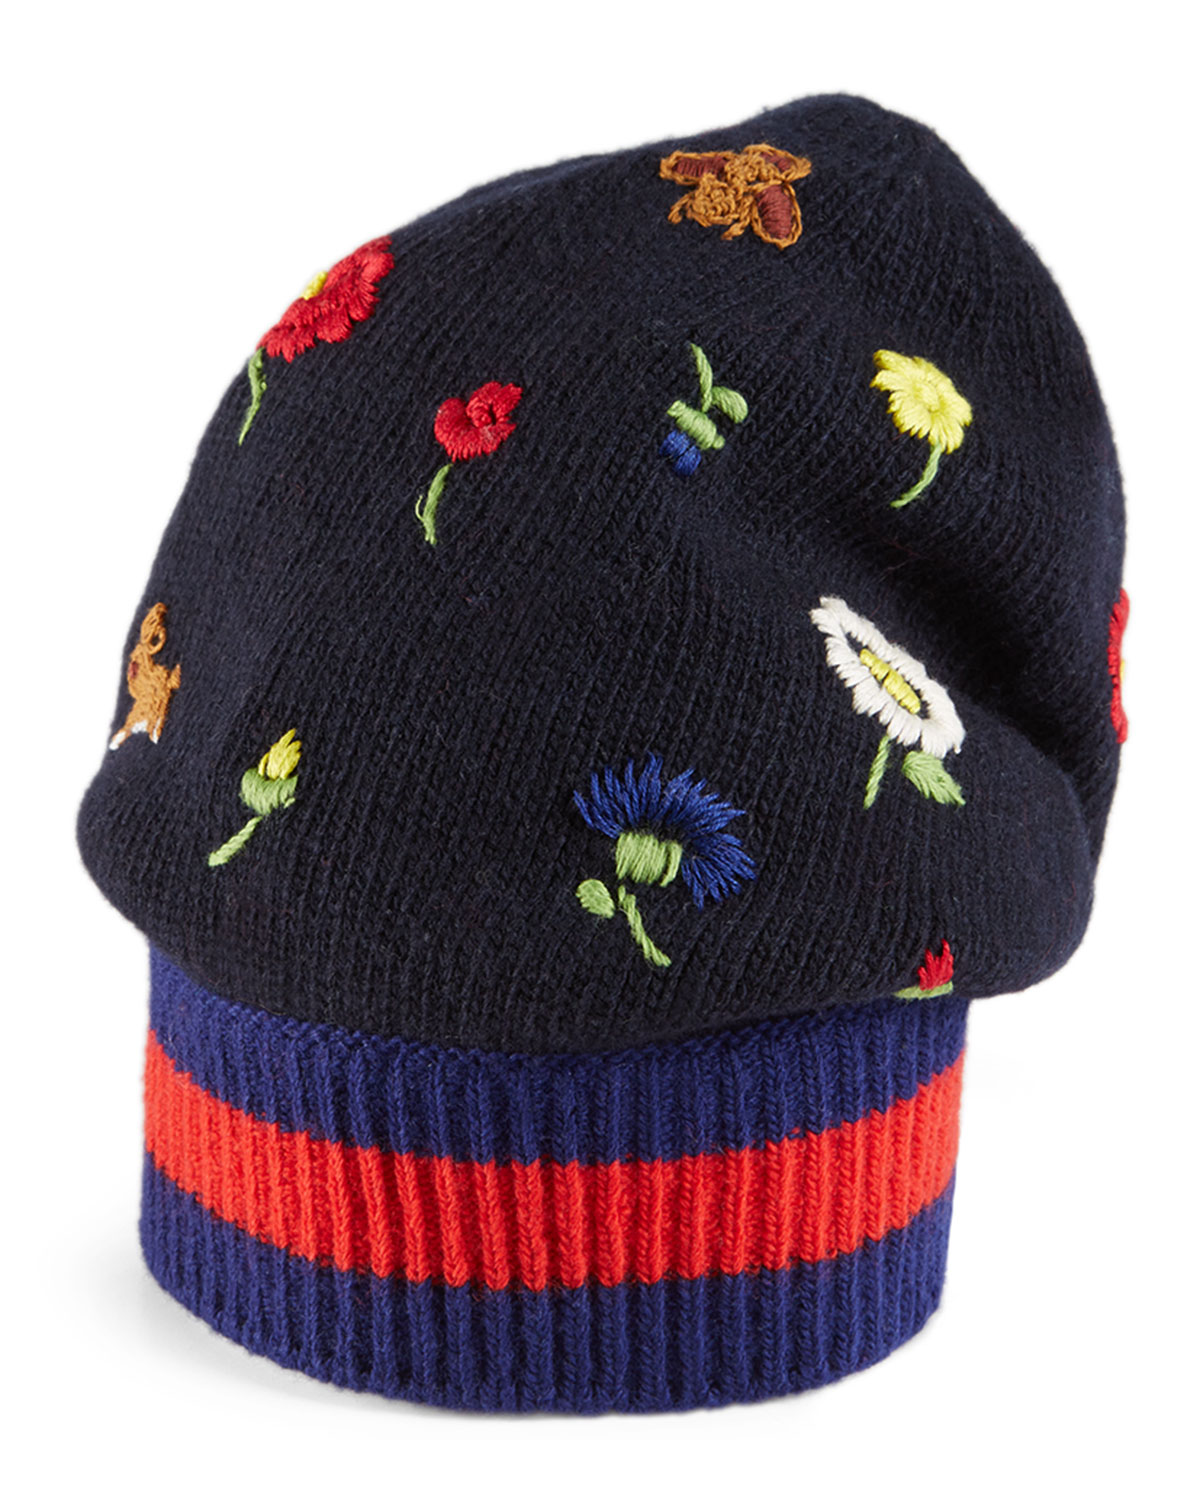 bee embroidered pom pom hat - Blue Gucci 9zOAnn